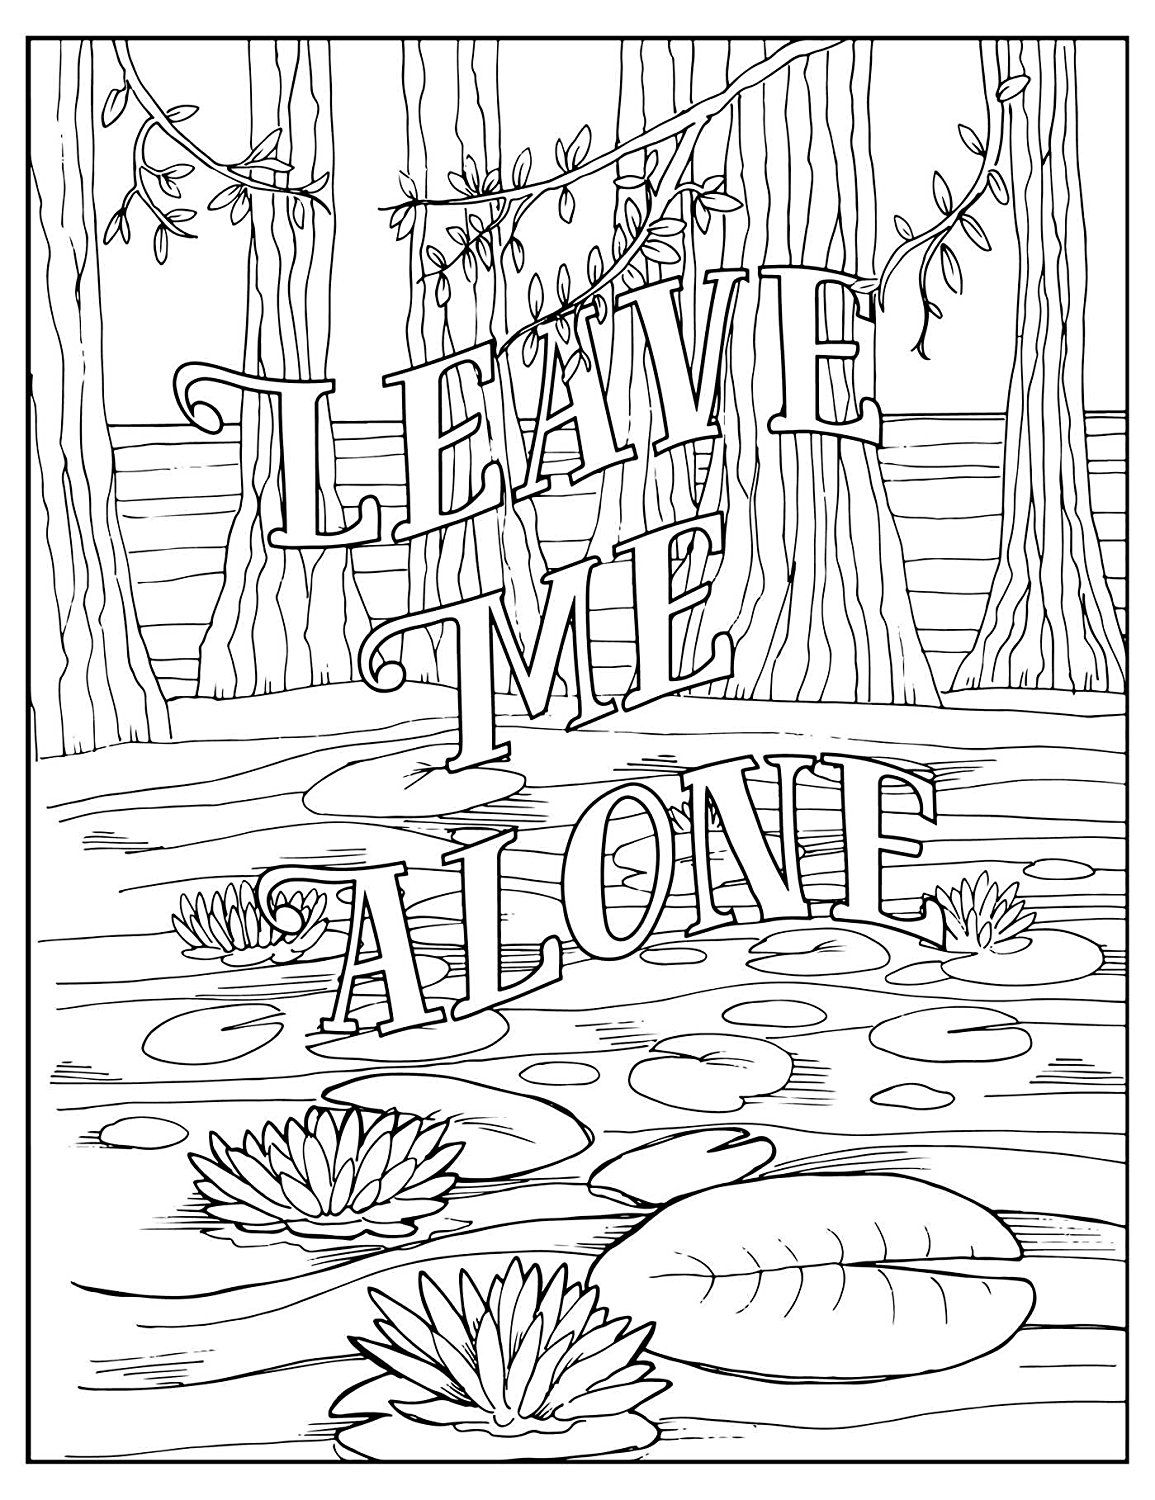 Swear word coloring book volume 1 - Fuck Off I M Coloring Unwind With 50 Obnoxiously Fun Swear Word Coloring